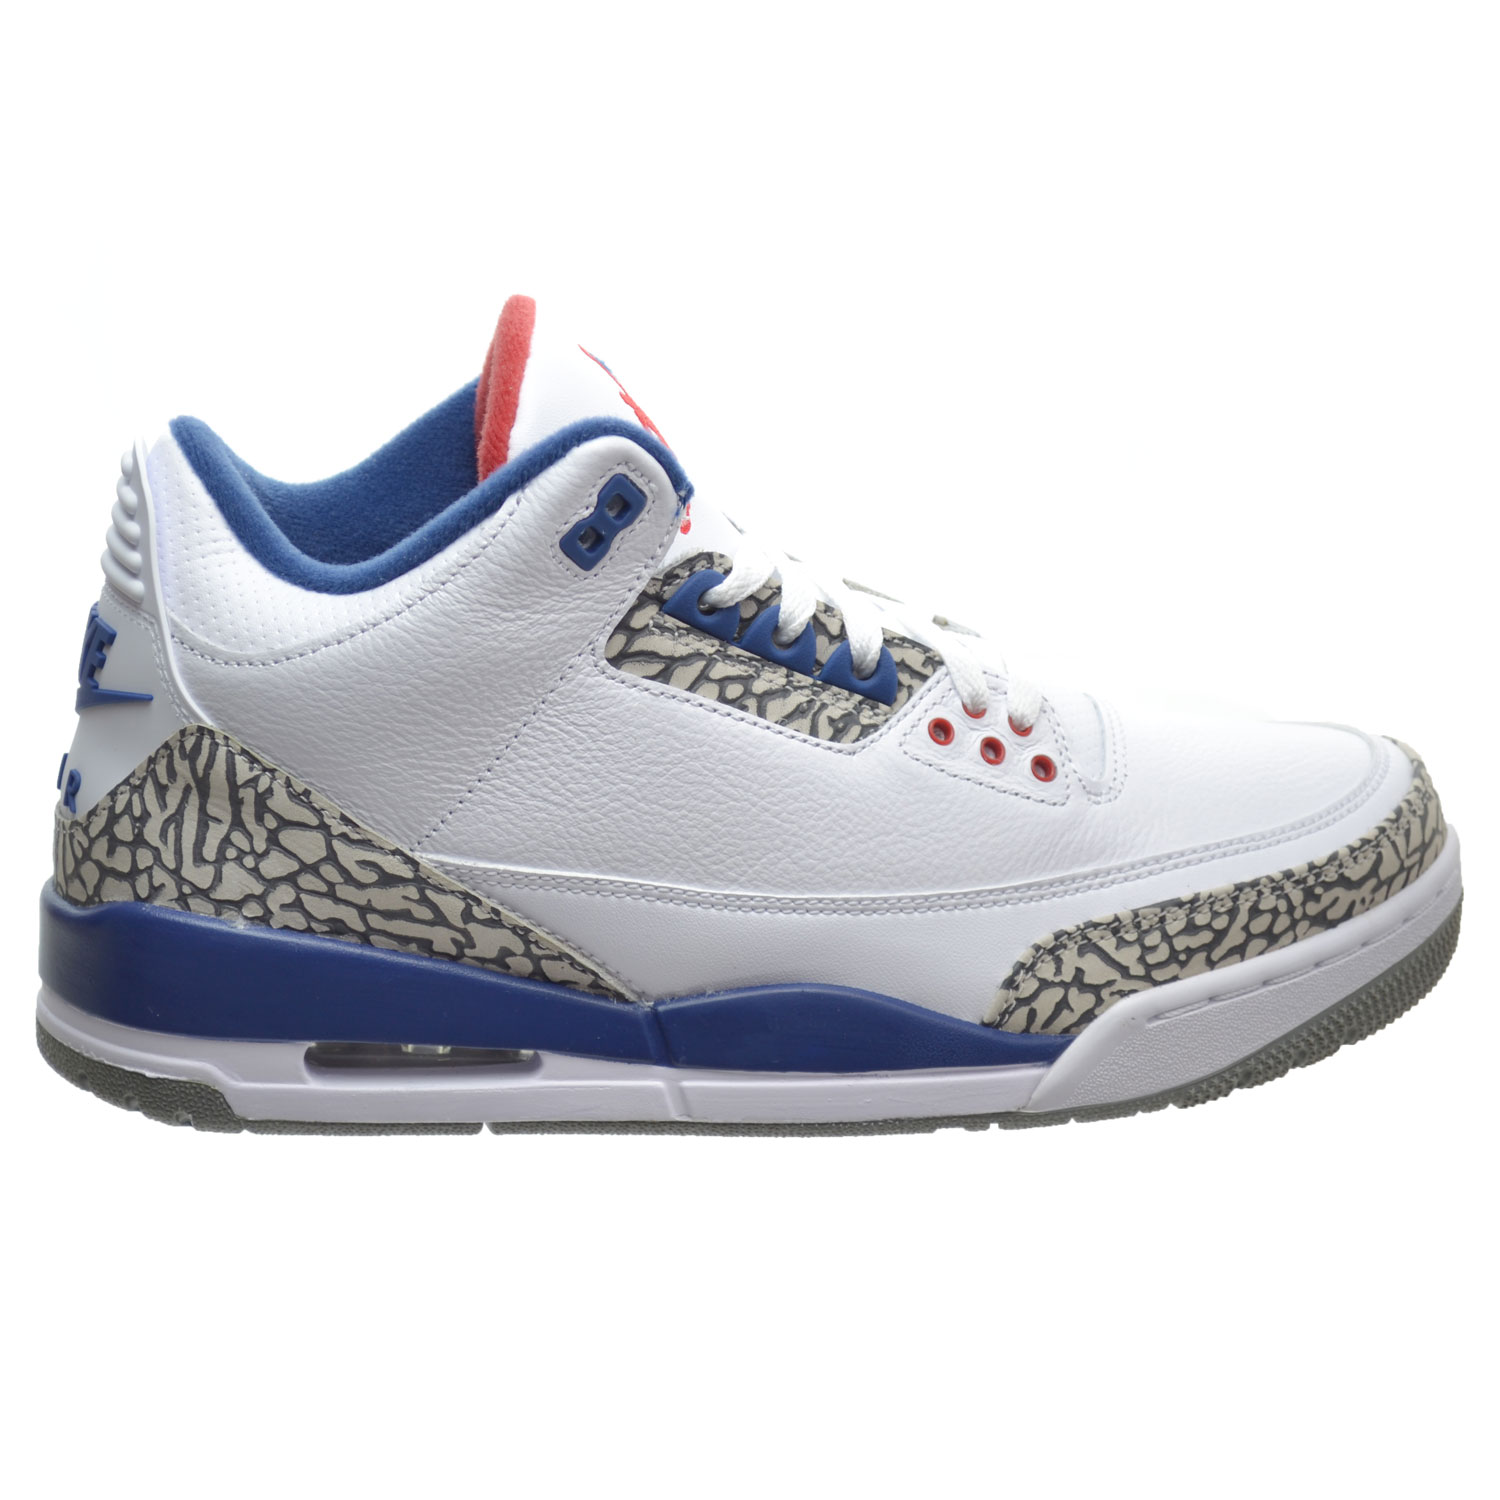 Air Jordan 3 Retro OG Men's Shoes White/Fire Red/True Blue 854262-106